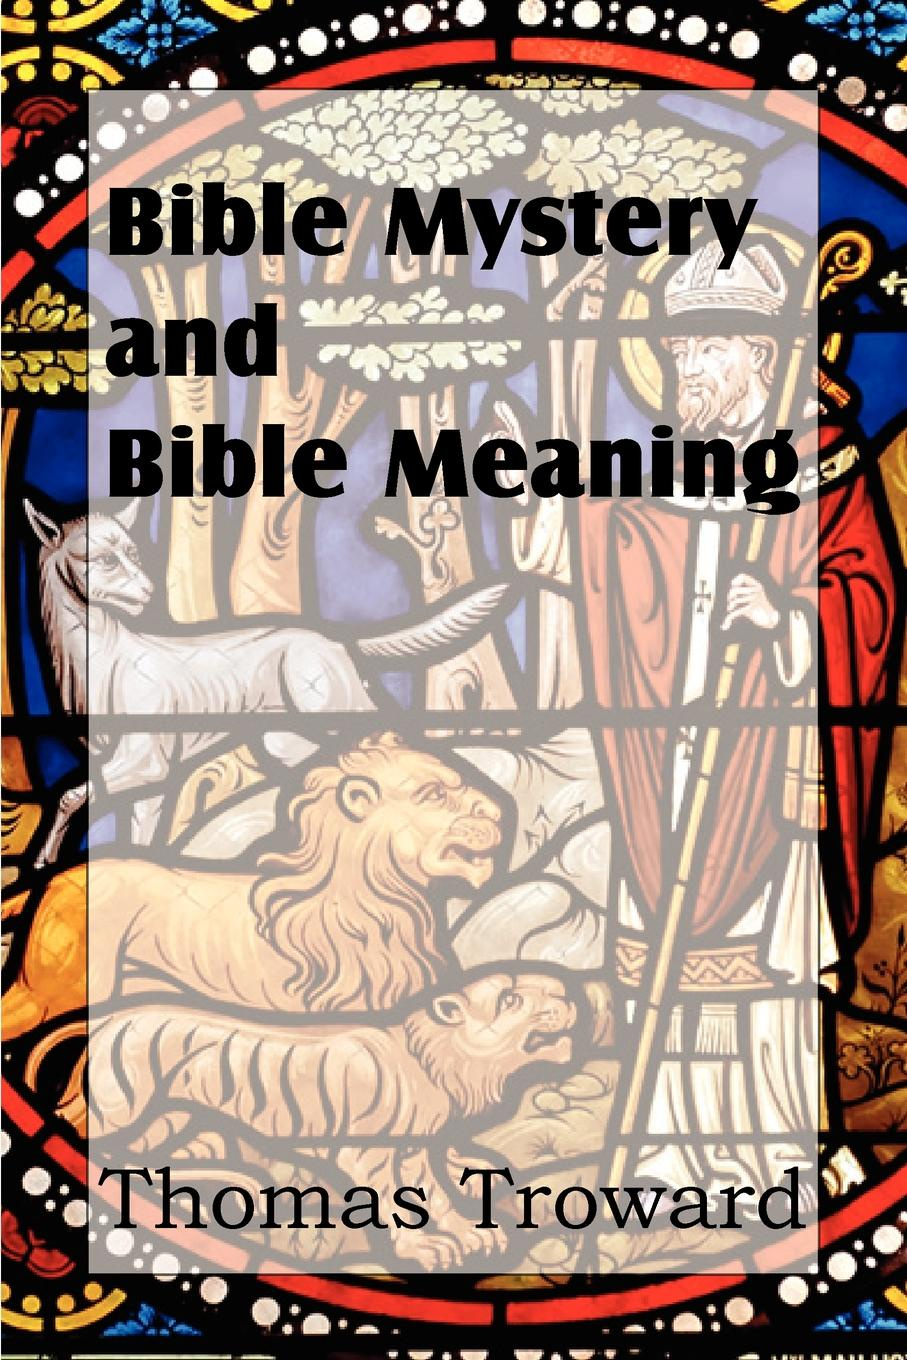 Thomas Troward Bible Mystery and Bible Meaning aileen albersworth what shall it profit a man